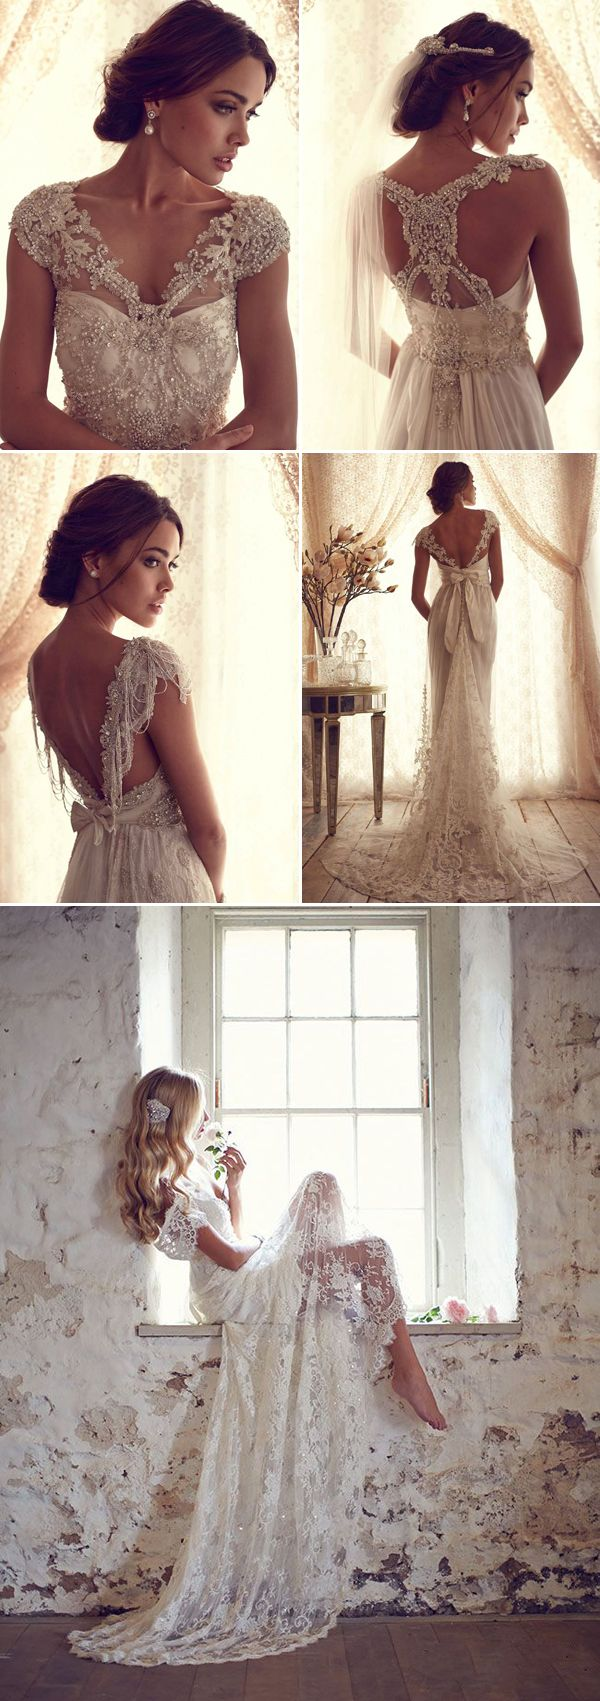 Vintage wedding dresses have a way of making everyone who wears them look like an elegant Goddess.  We love it when designers get inspiration from the styles of bygone eras to create something new year after year.  Chic vintage gowns are the perfect way to achieve that sweet nostalgic look on your special day, blending …